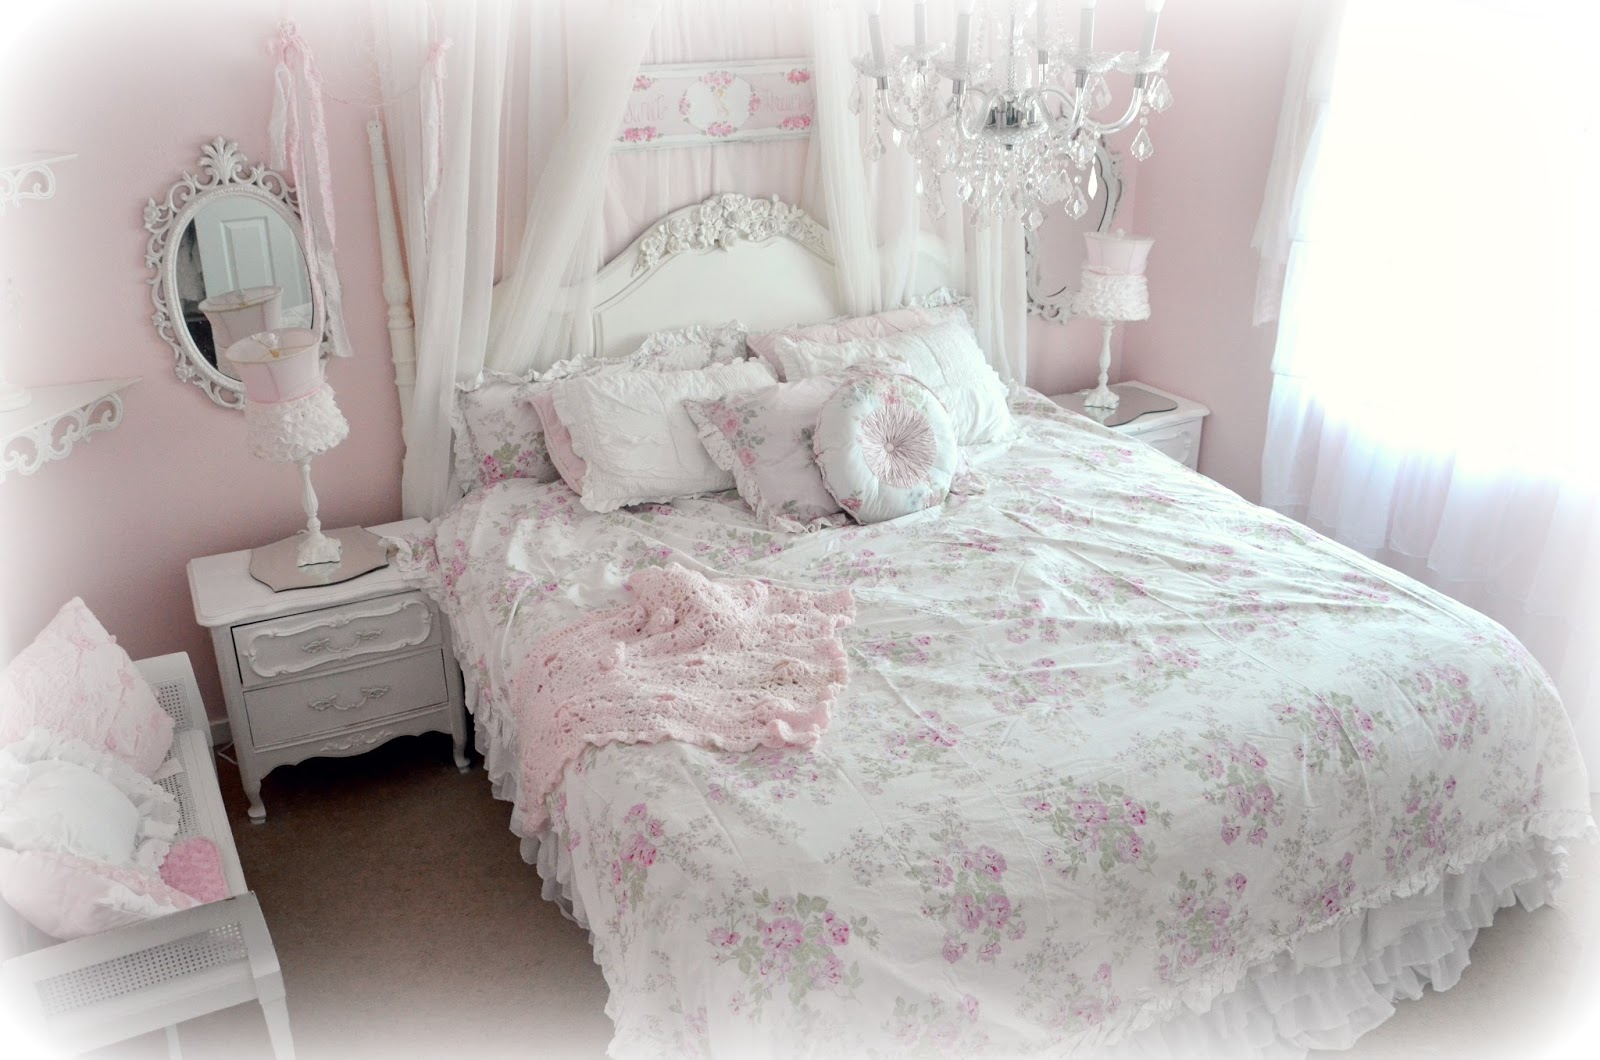 Not so shabby shabby chic new simply shabby chic bedding for Photo shabby chic